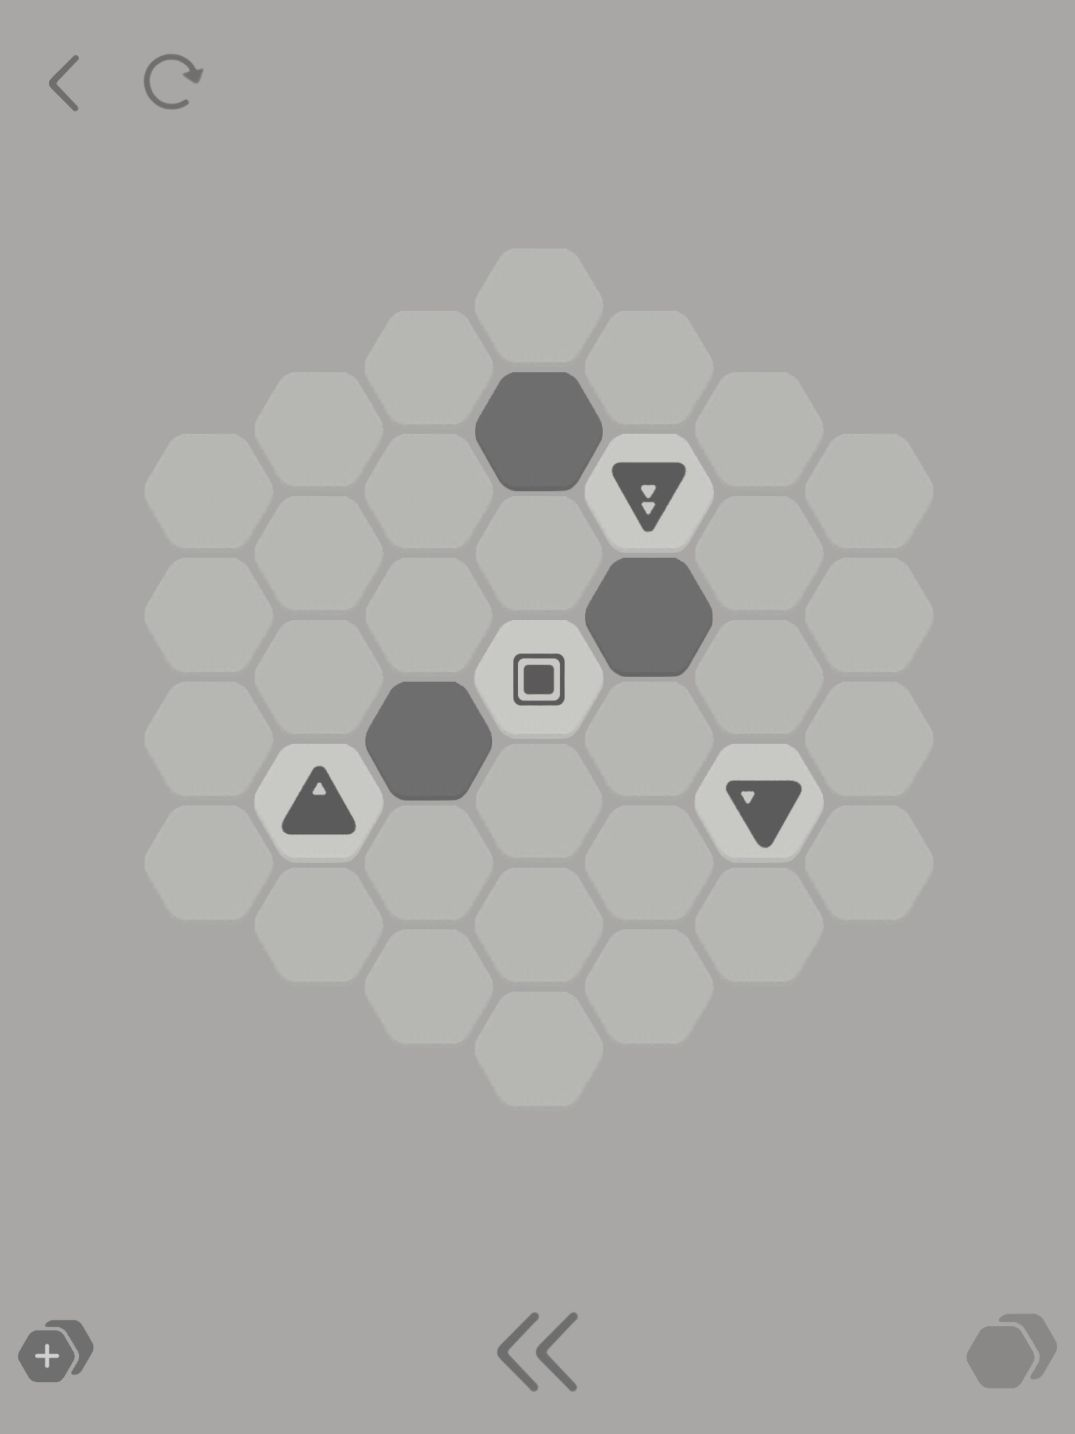 Hexa Turn (copie d'écran 6 sur iPhone / iPad)